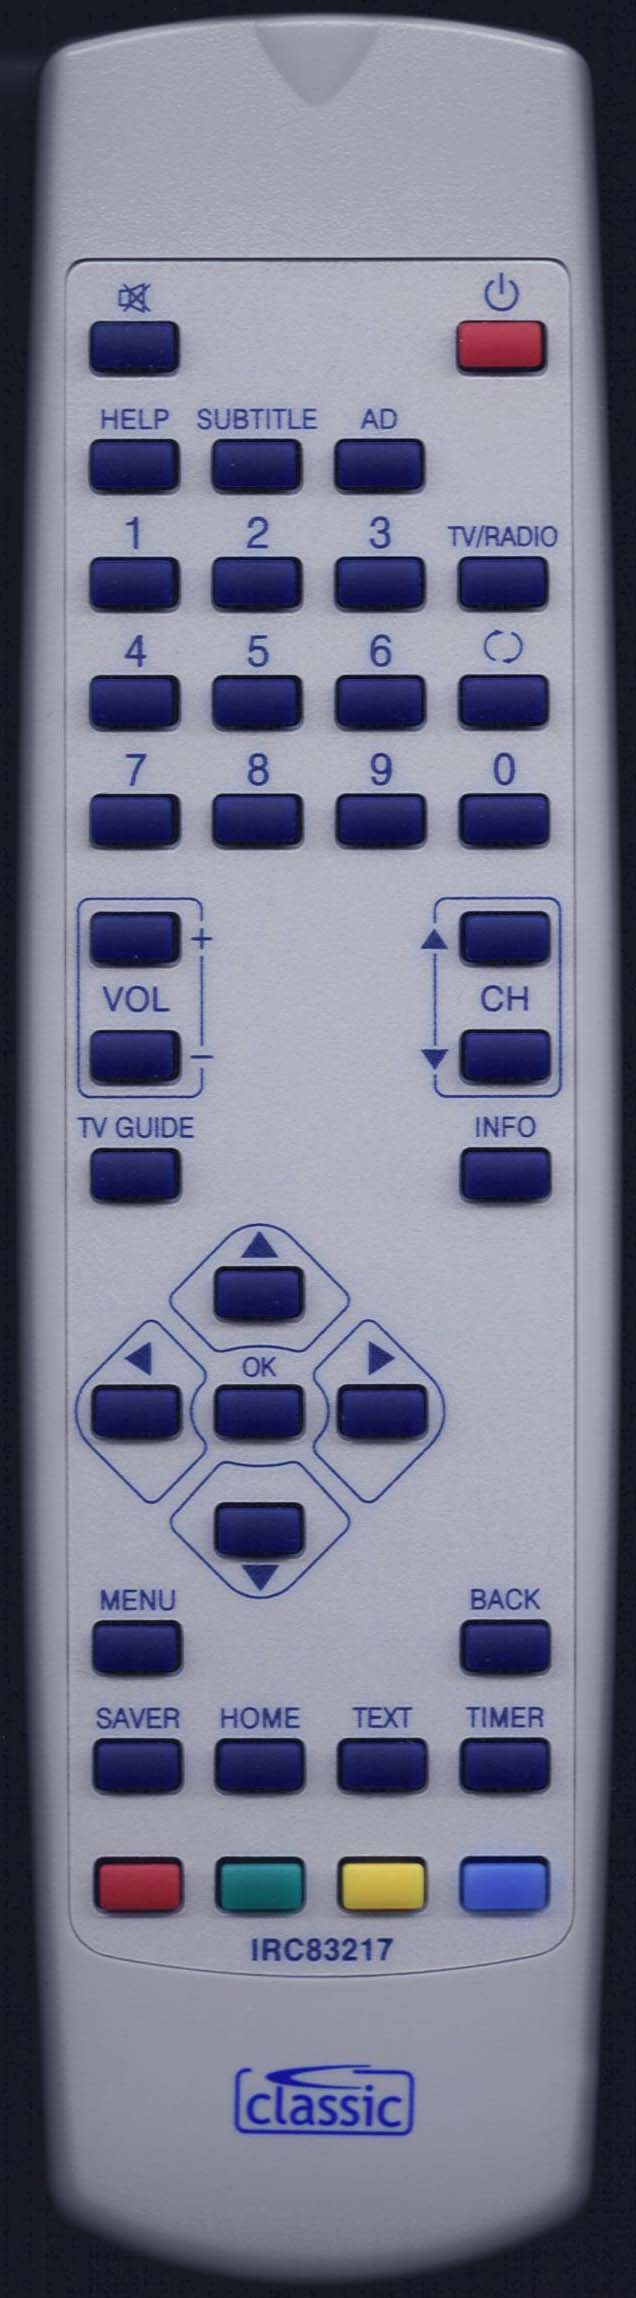 TVONICS MDR-300 Replacement Remote Control